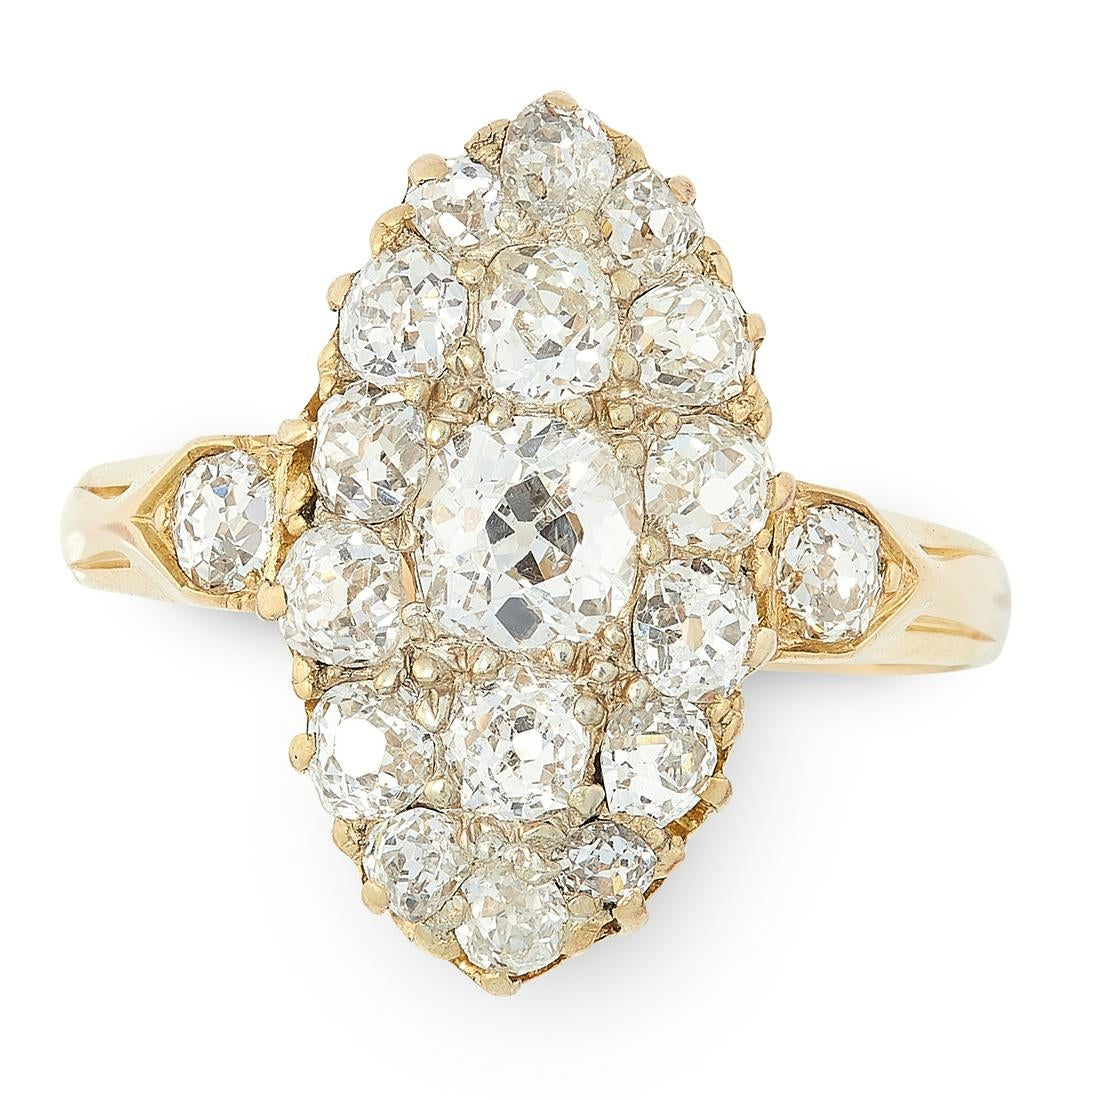 AN ANTIQUE DIAMOND DRESS RING in high carat yellow gold, the nanette face set with a cluster of